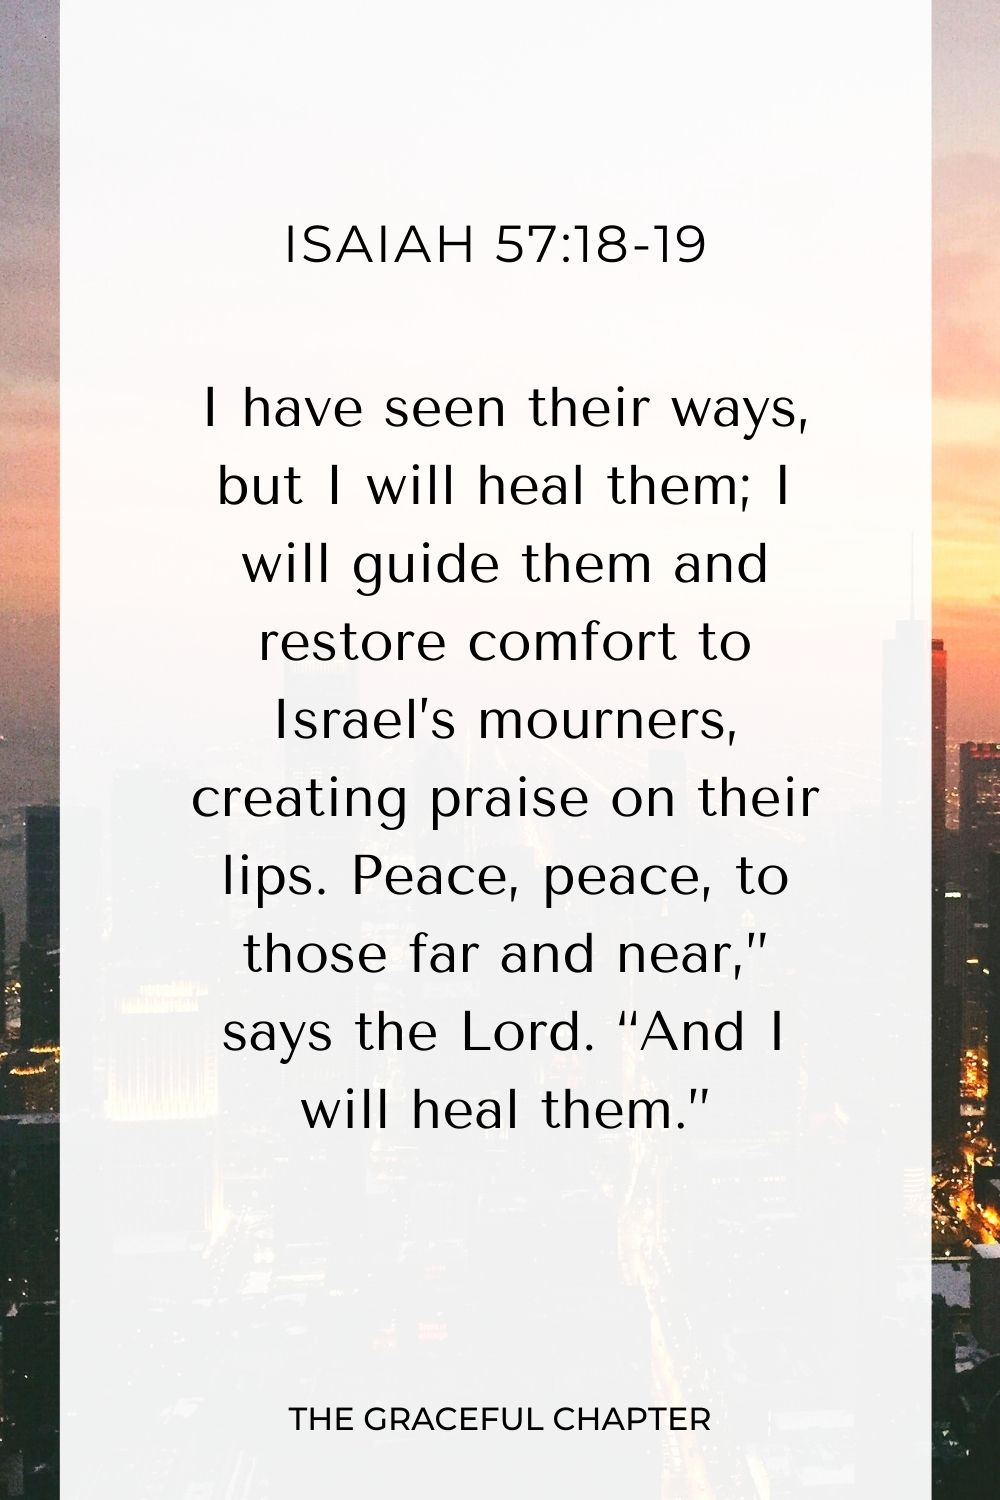 """I have seen their ways, but I will heal them; I will guide them and restore comfort to Israel's mourners, creating praise on their lips. Peace, peace, to those far and near,"""" says the Lord. """"And I will heal them."""" Isaiah 57:18-19"""